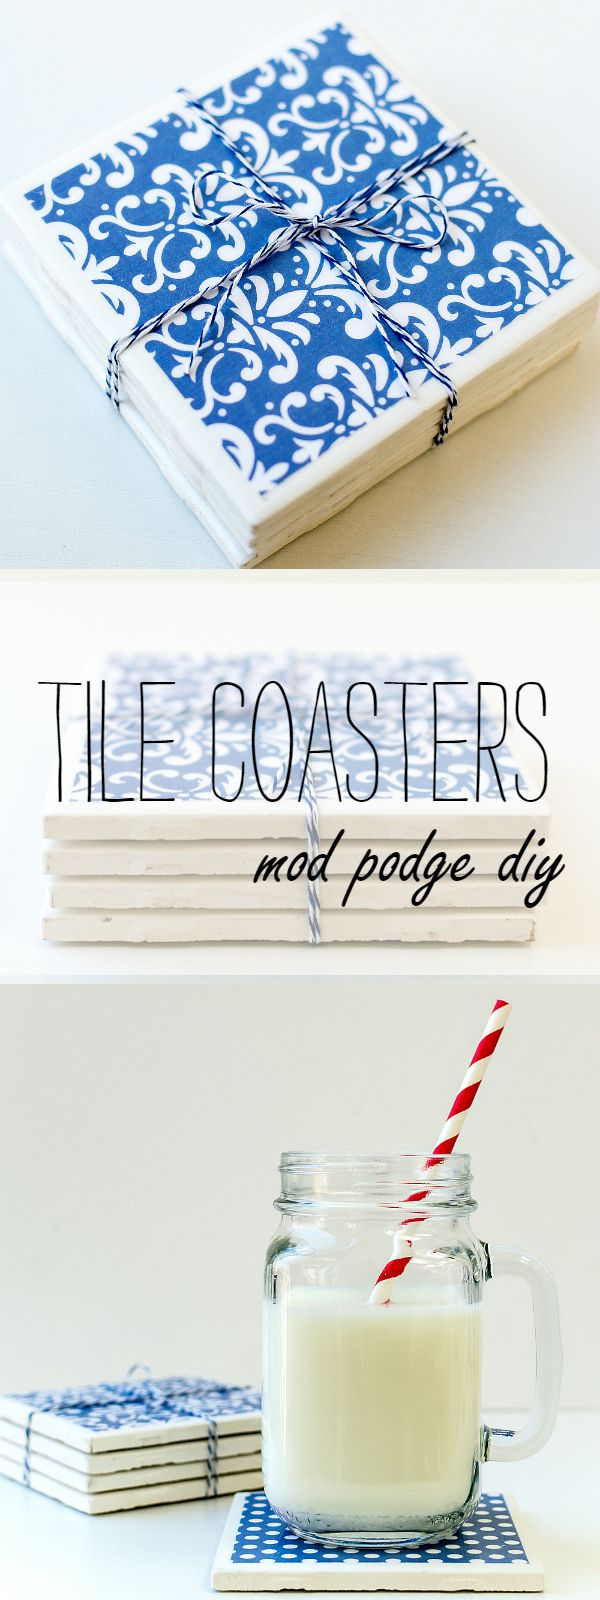 Tile Coaster DIY Project - diy coaster ideas using tiles and Mod Podge